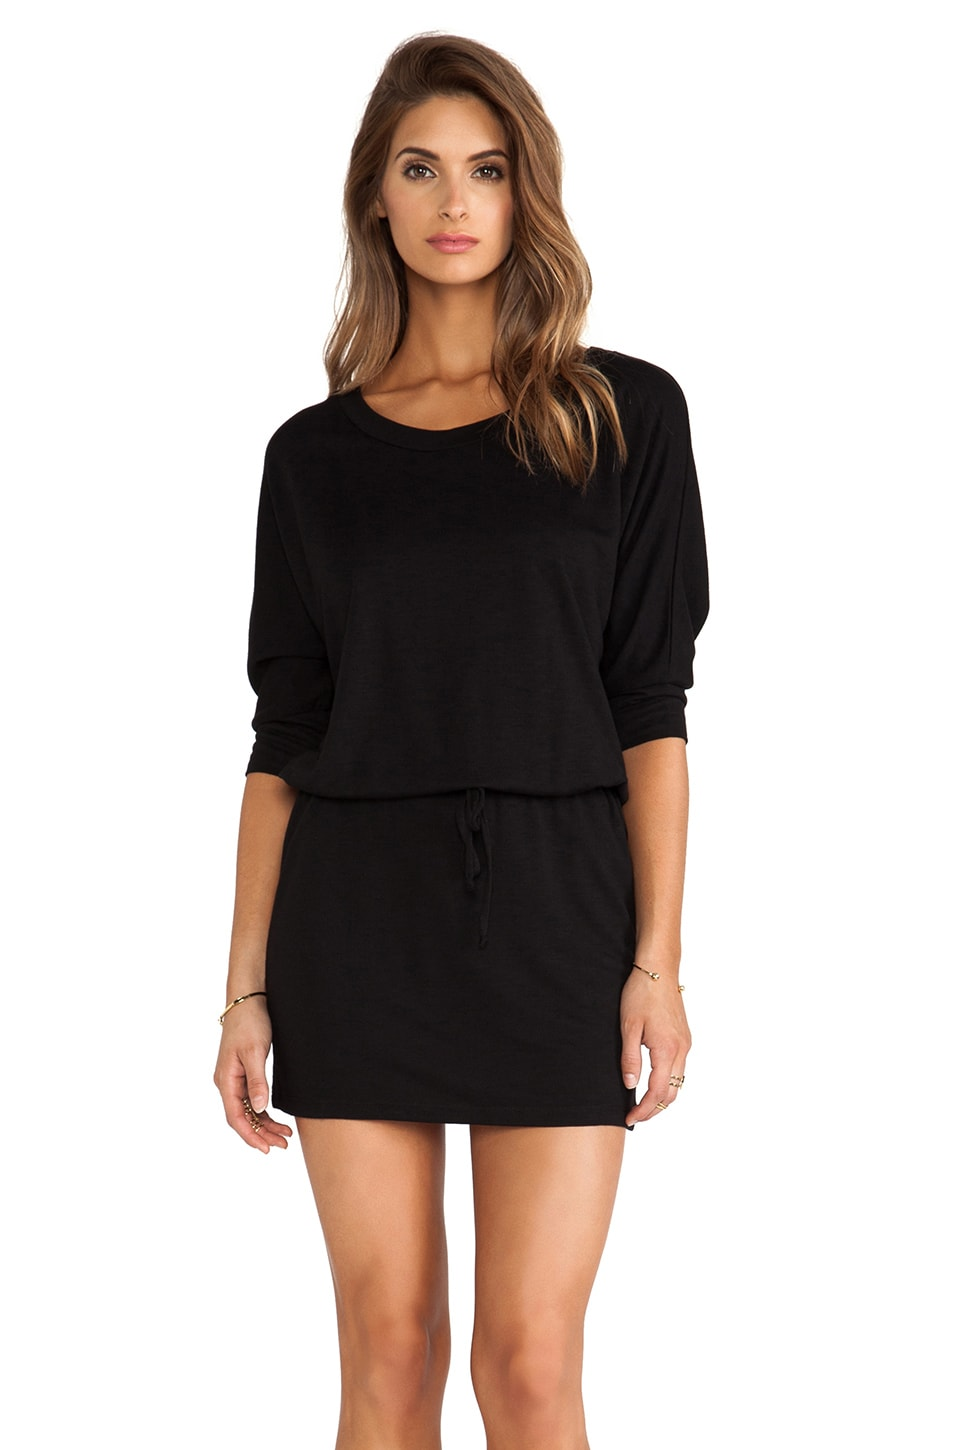 Lanston Boyfriend Mini Dress in Black